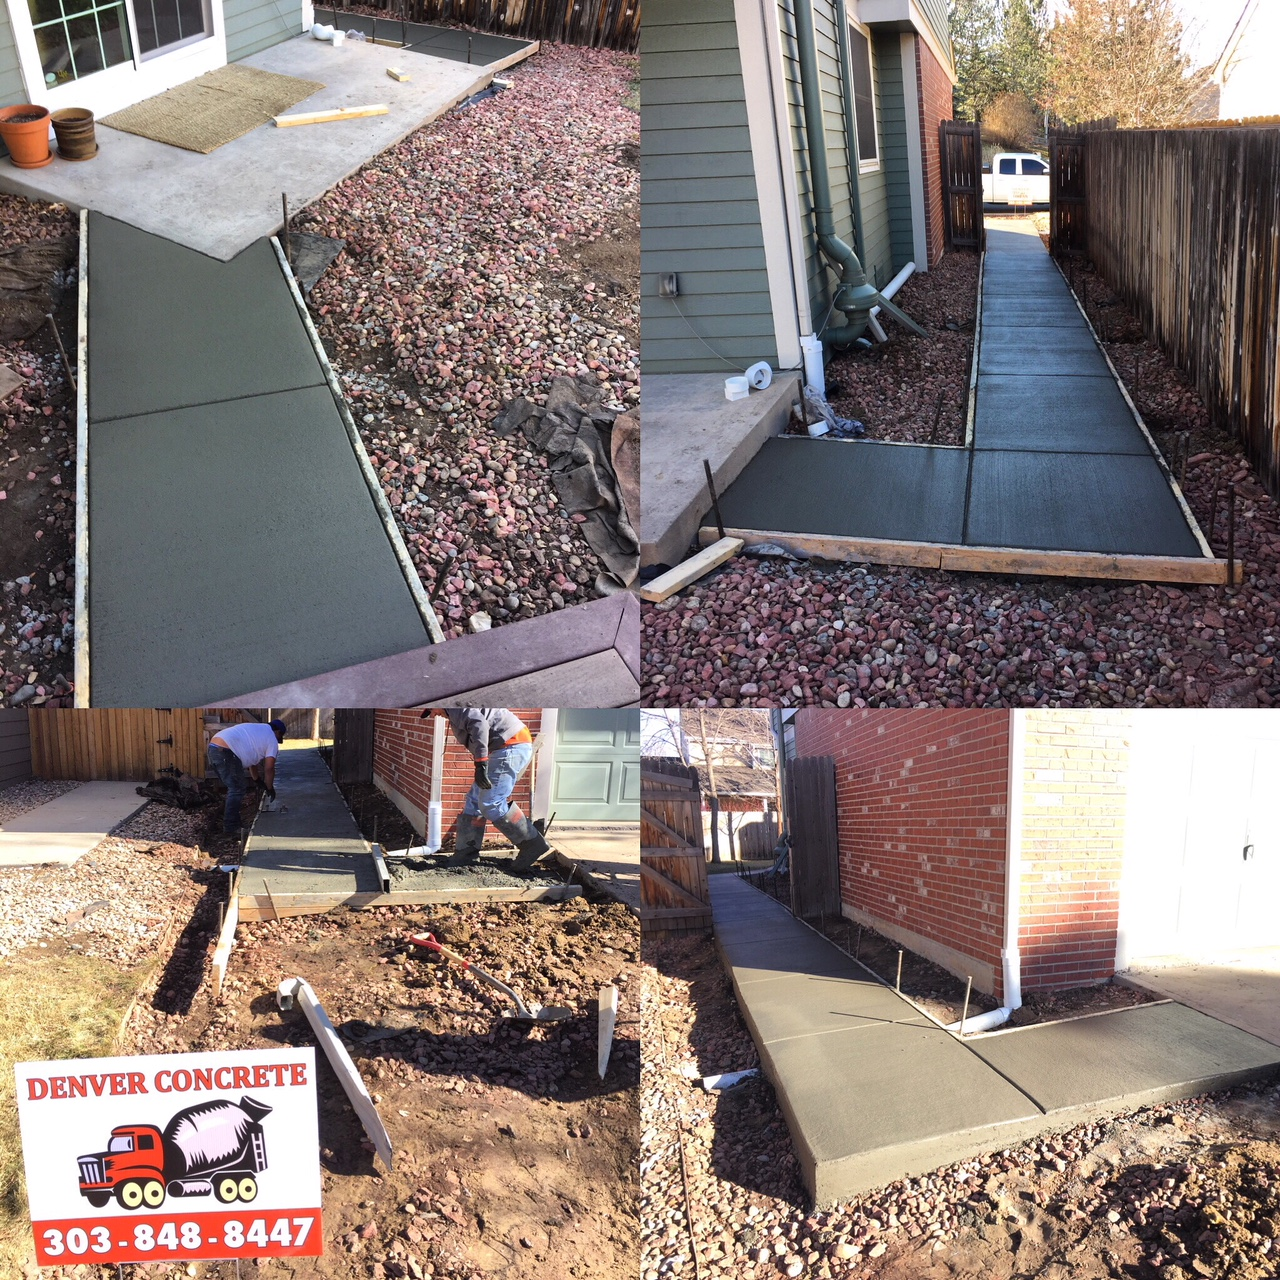 Denver Concrete Sidewalks - Sidewalk & Path Repairs